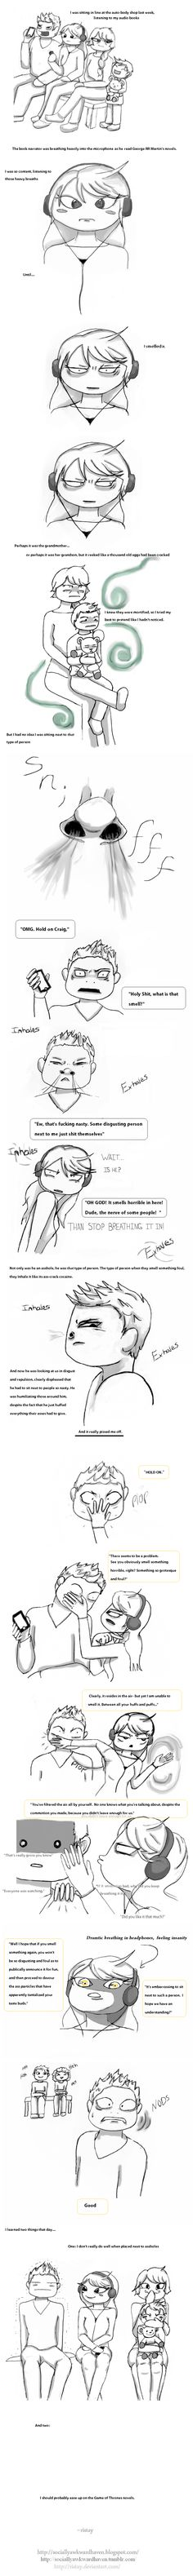 Those types of people by Ristay.deviantart.com on @DeviantArt